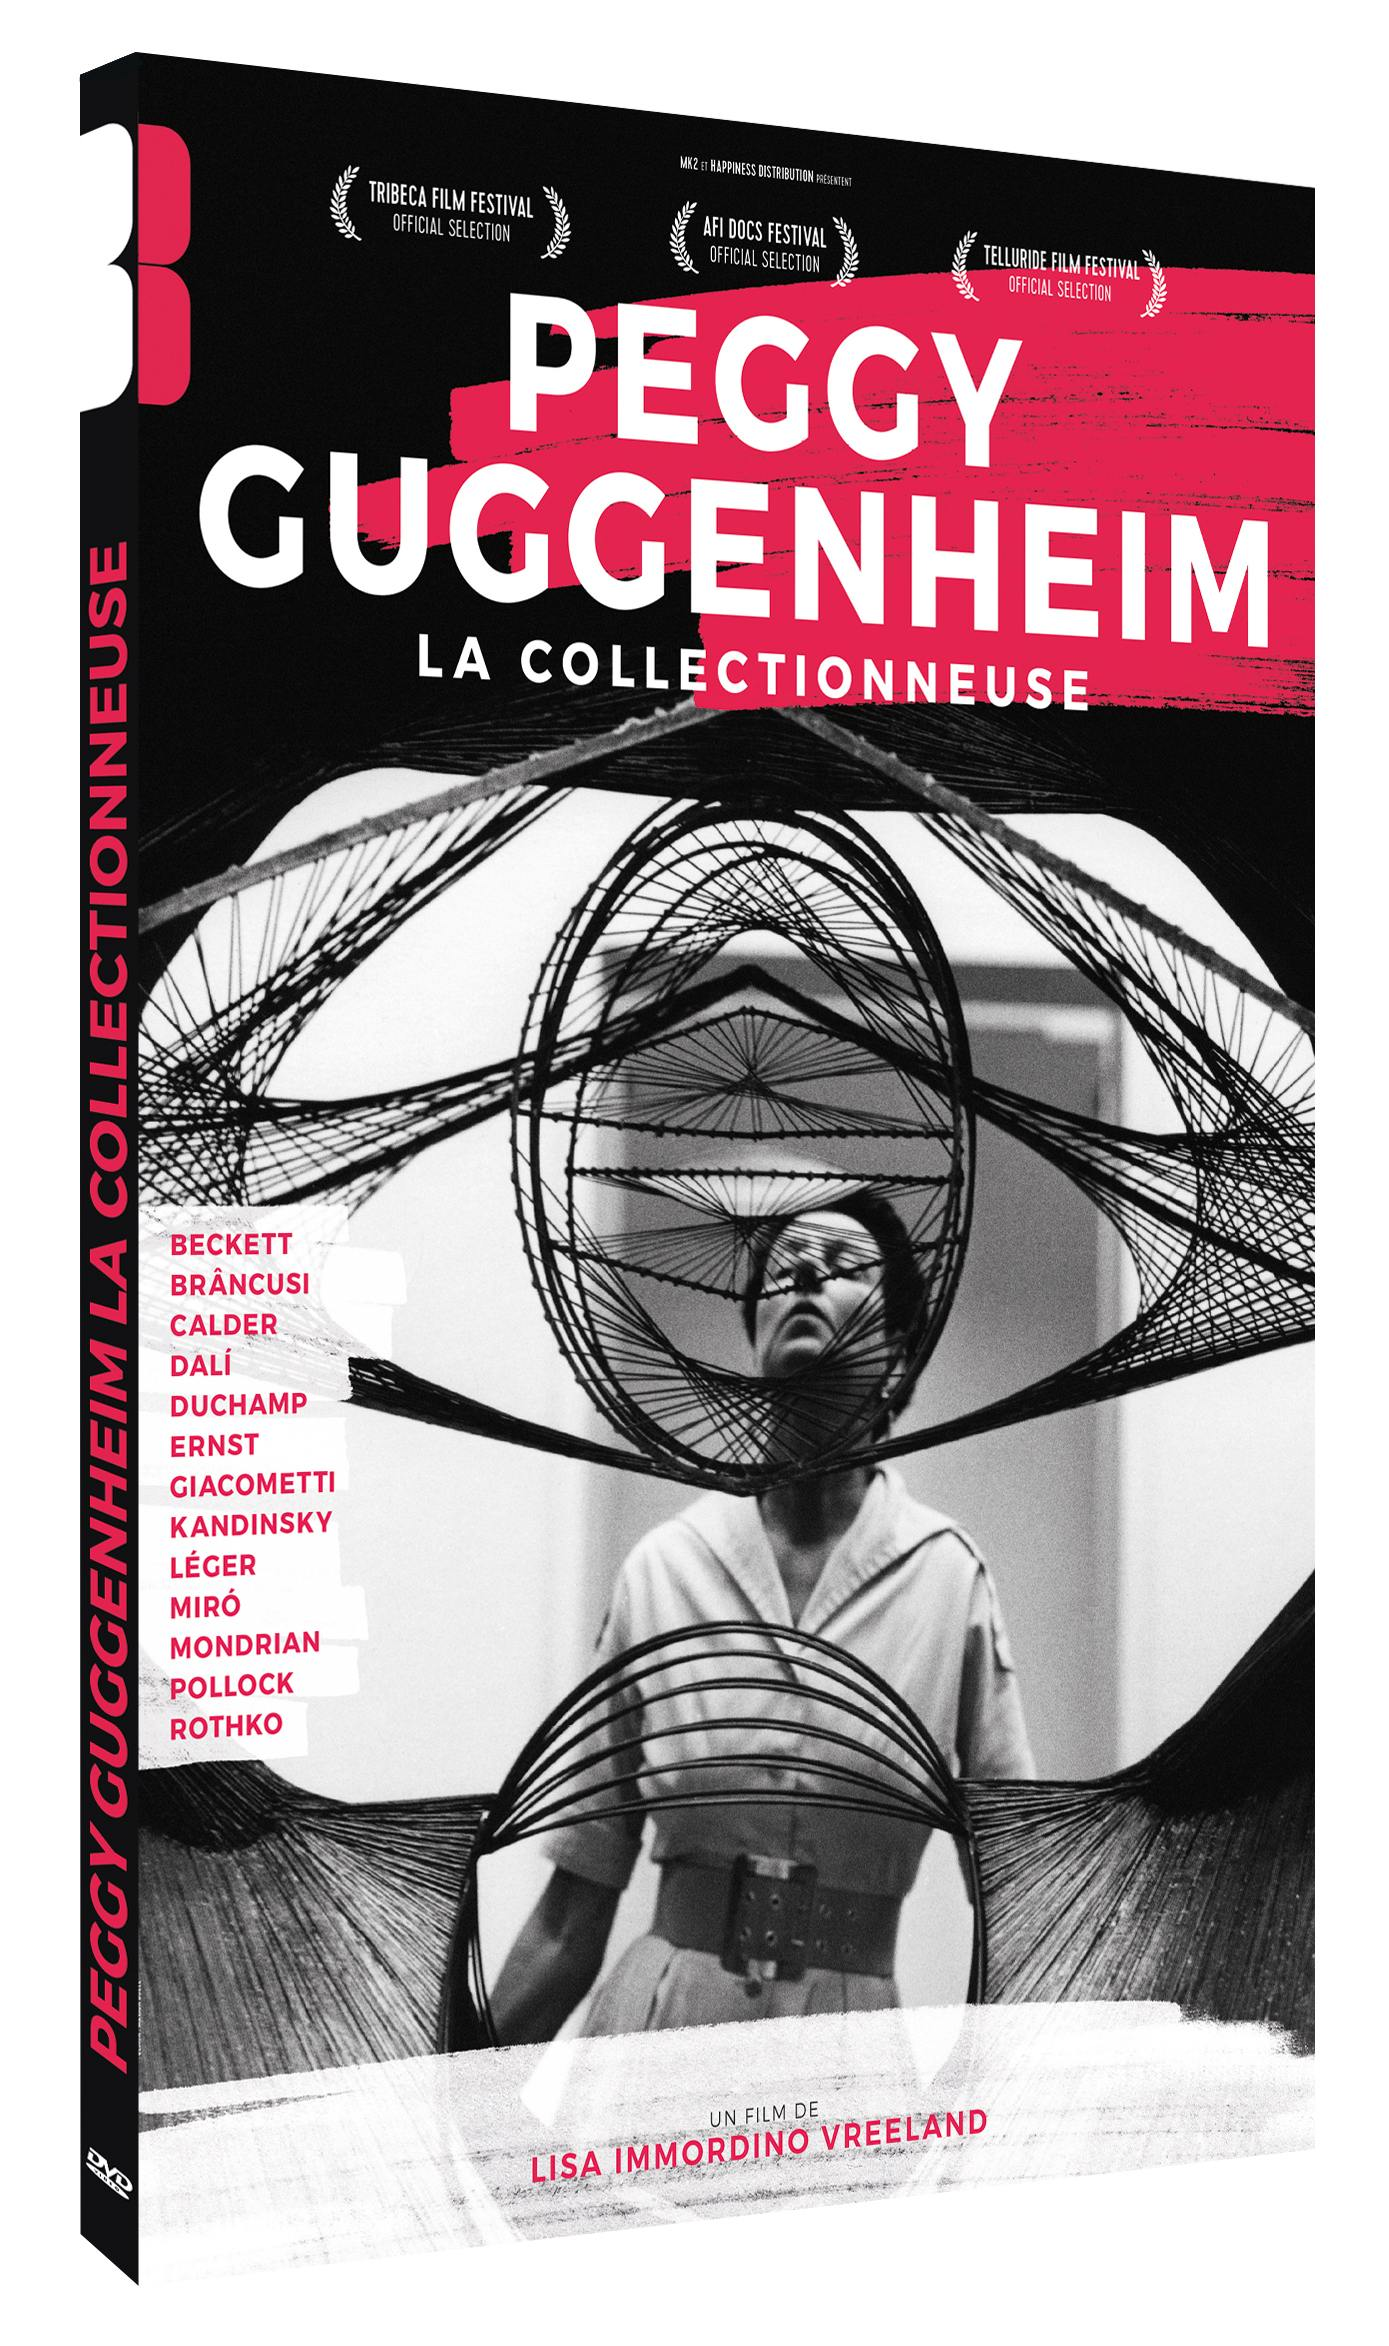 Peggy guggenheim, la collectionneuse - dvd